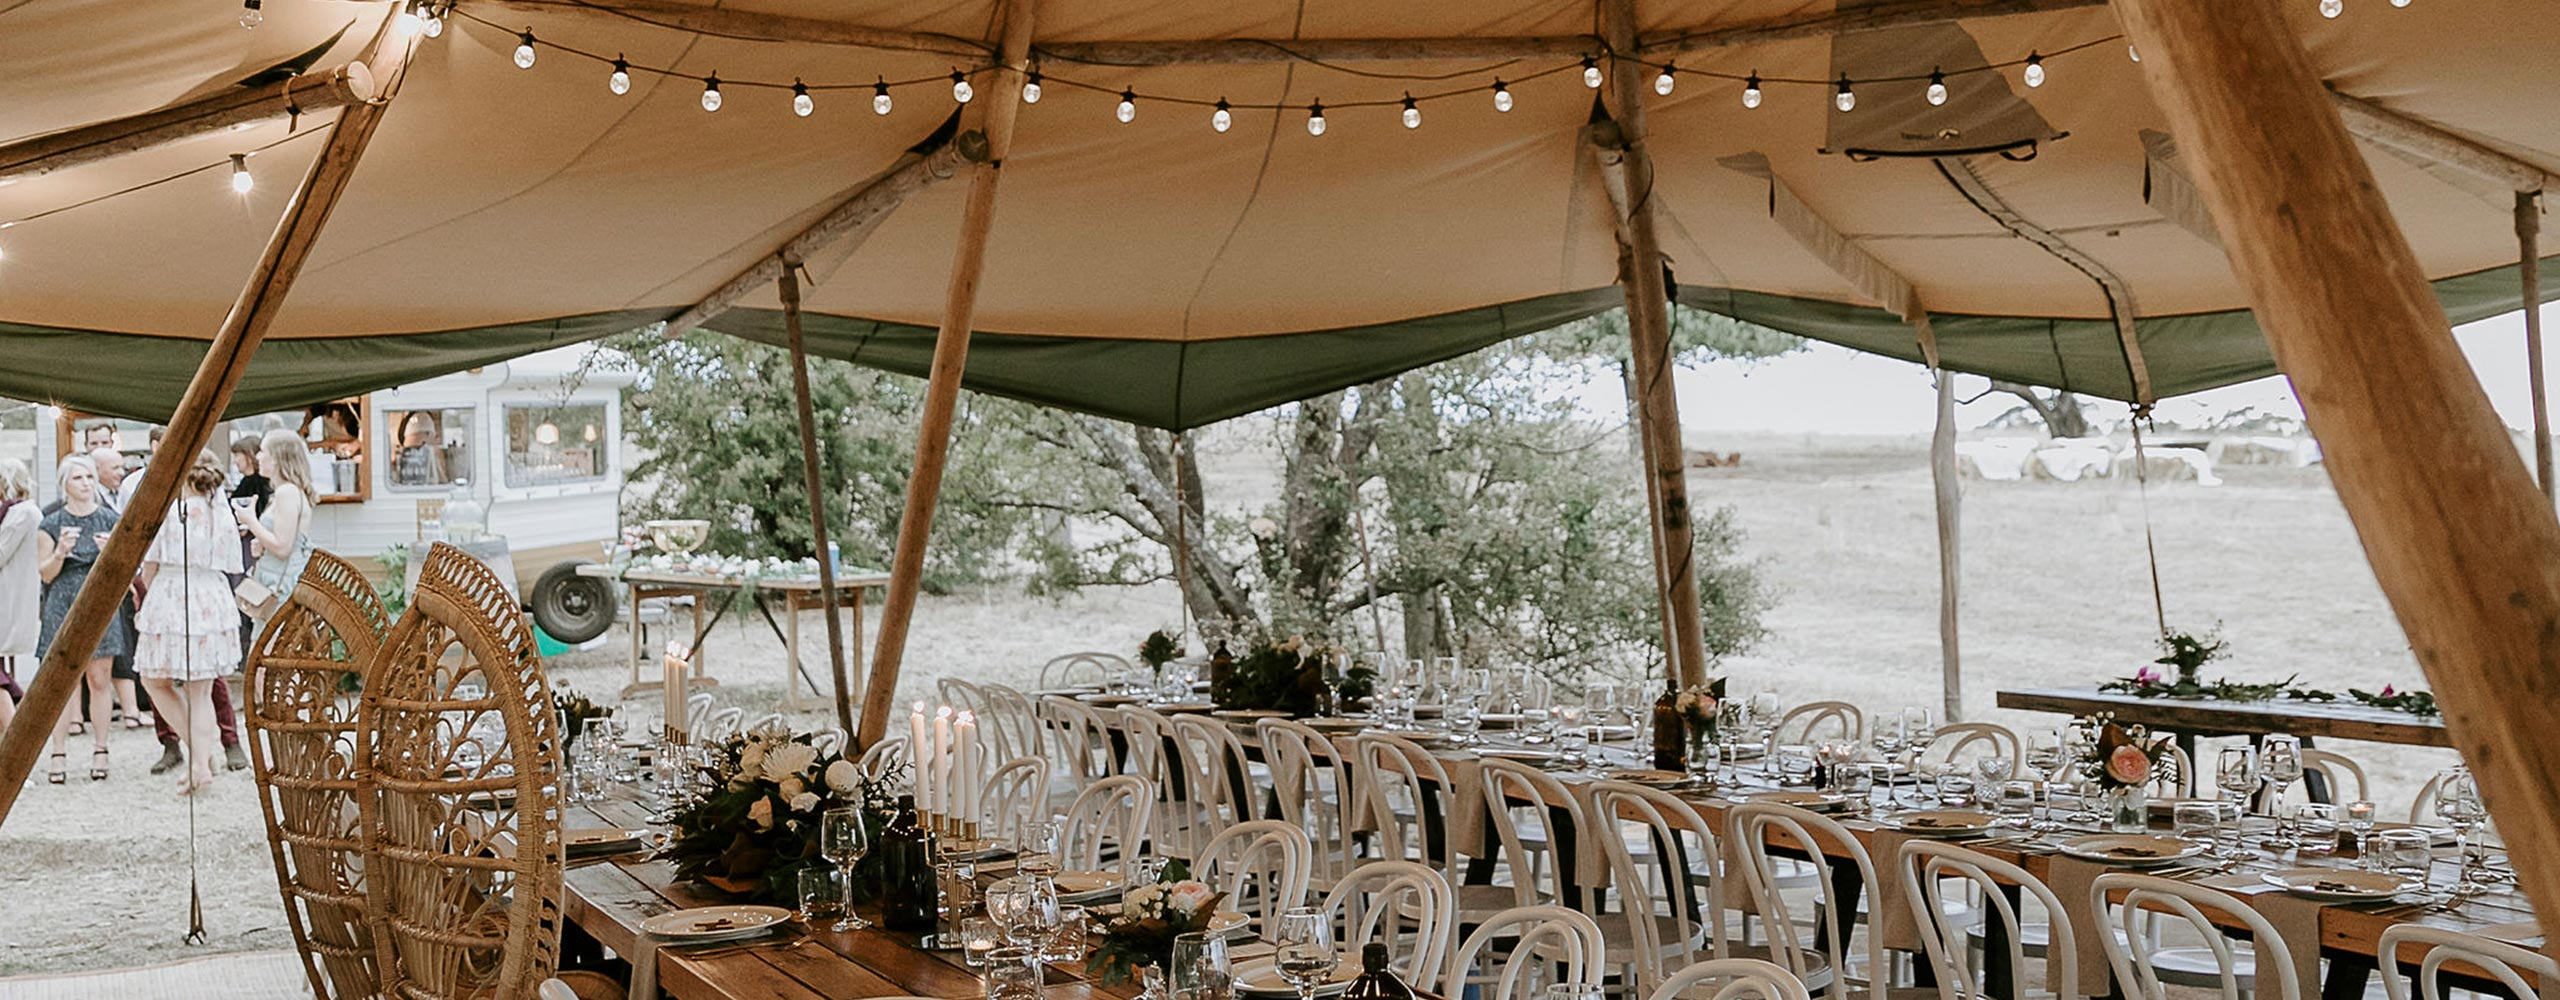 Dancing at wedding under the giant tipi in Gippsland, Victoria